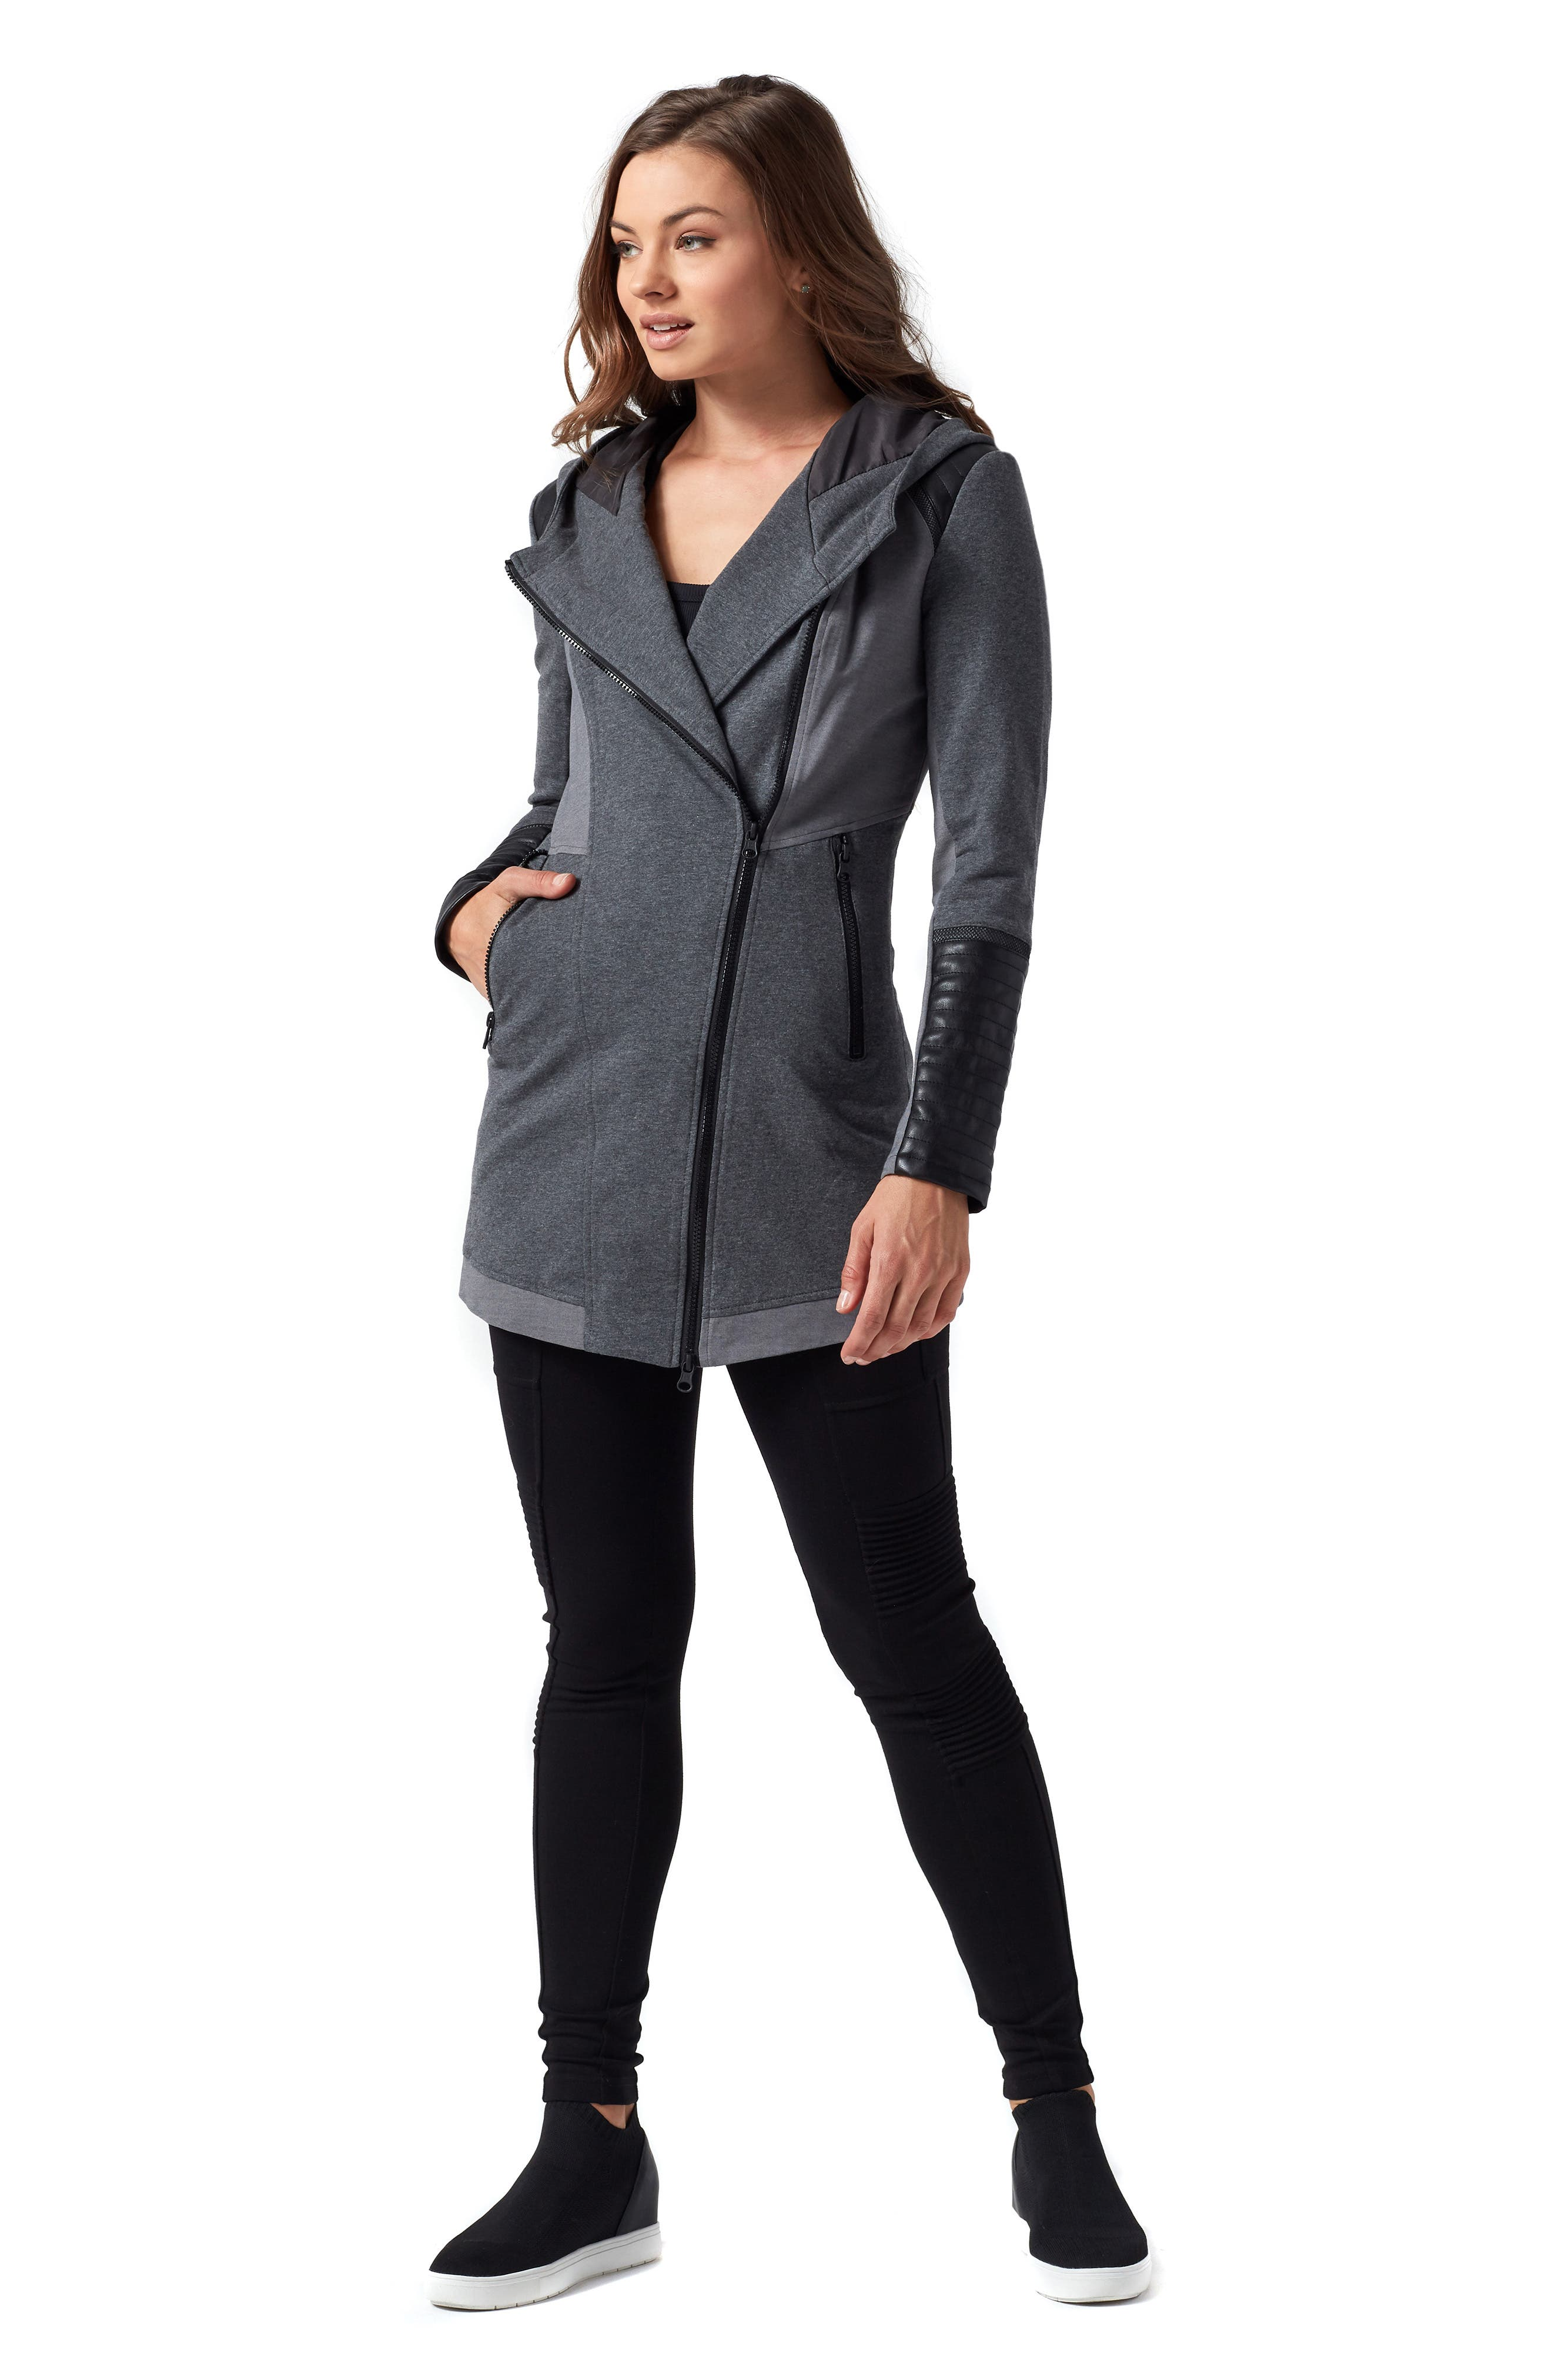 BLANC NOIR, Traveller Mesh Inset Jacket, Alternate thumbnail 9, color, CHARCOAL